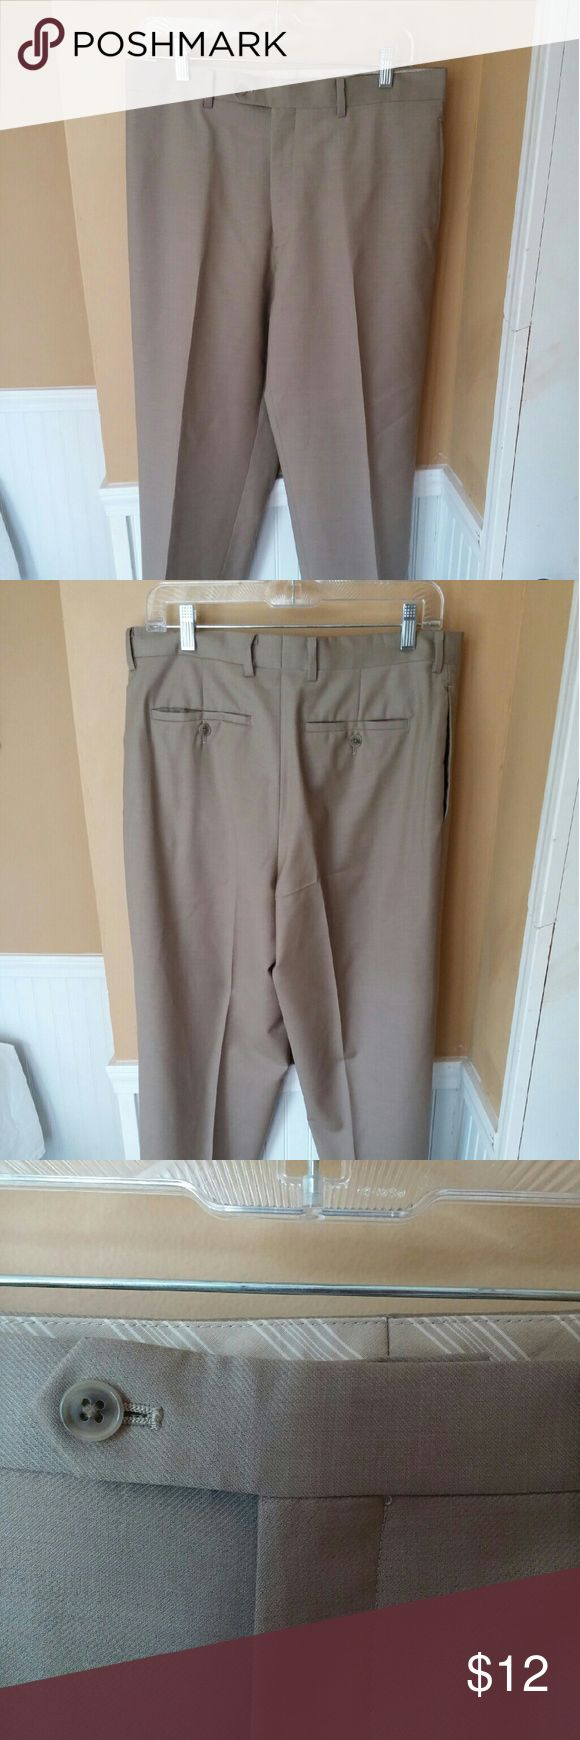 Calvin Klein Mens Pants Size 34x31 Wool Tan Great condition, non smoking household.  100% wool, lightweight fabric with a texture.  Actual measurements 34x31 Calvin Klein Pants Dress